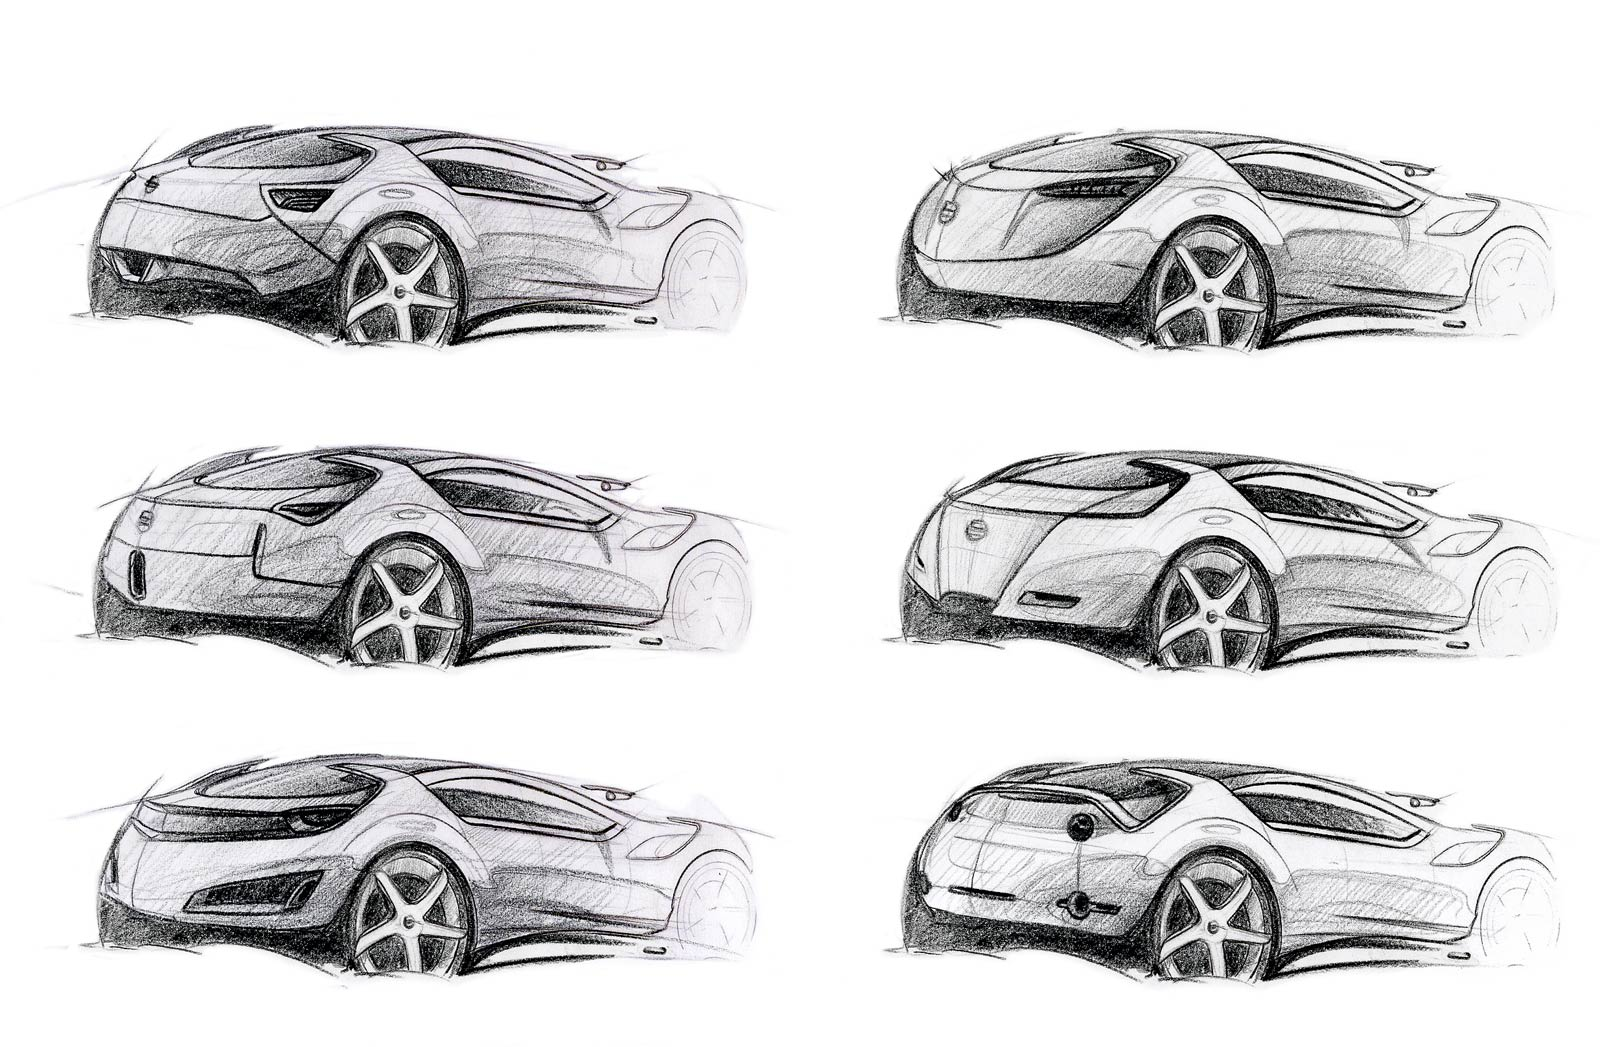 Datsun XLink Design Sketches